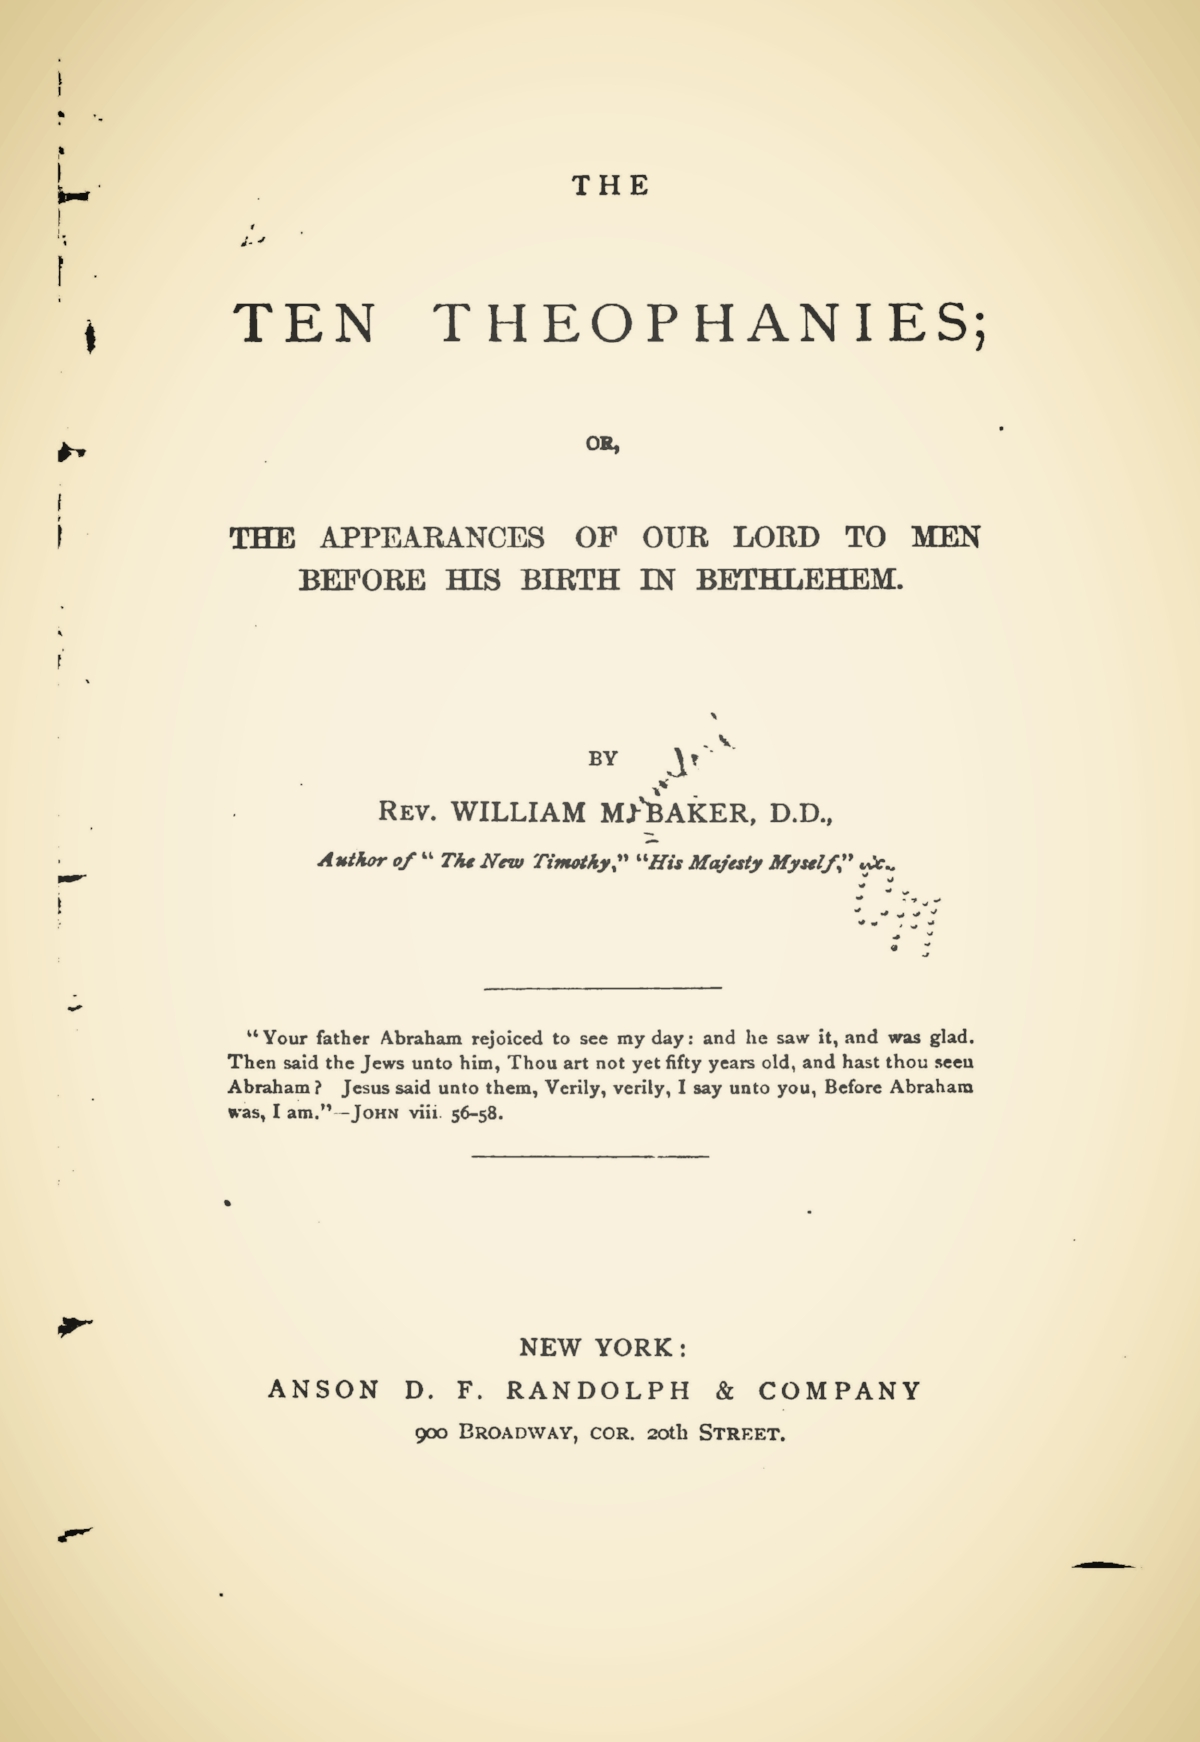 Baker, William Munford, The Ten Theophanies Title Page.jpg